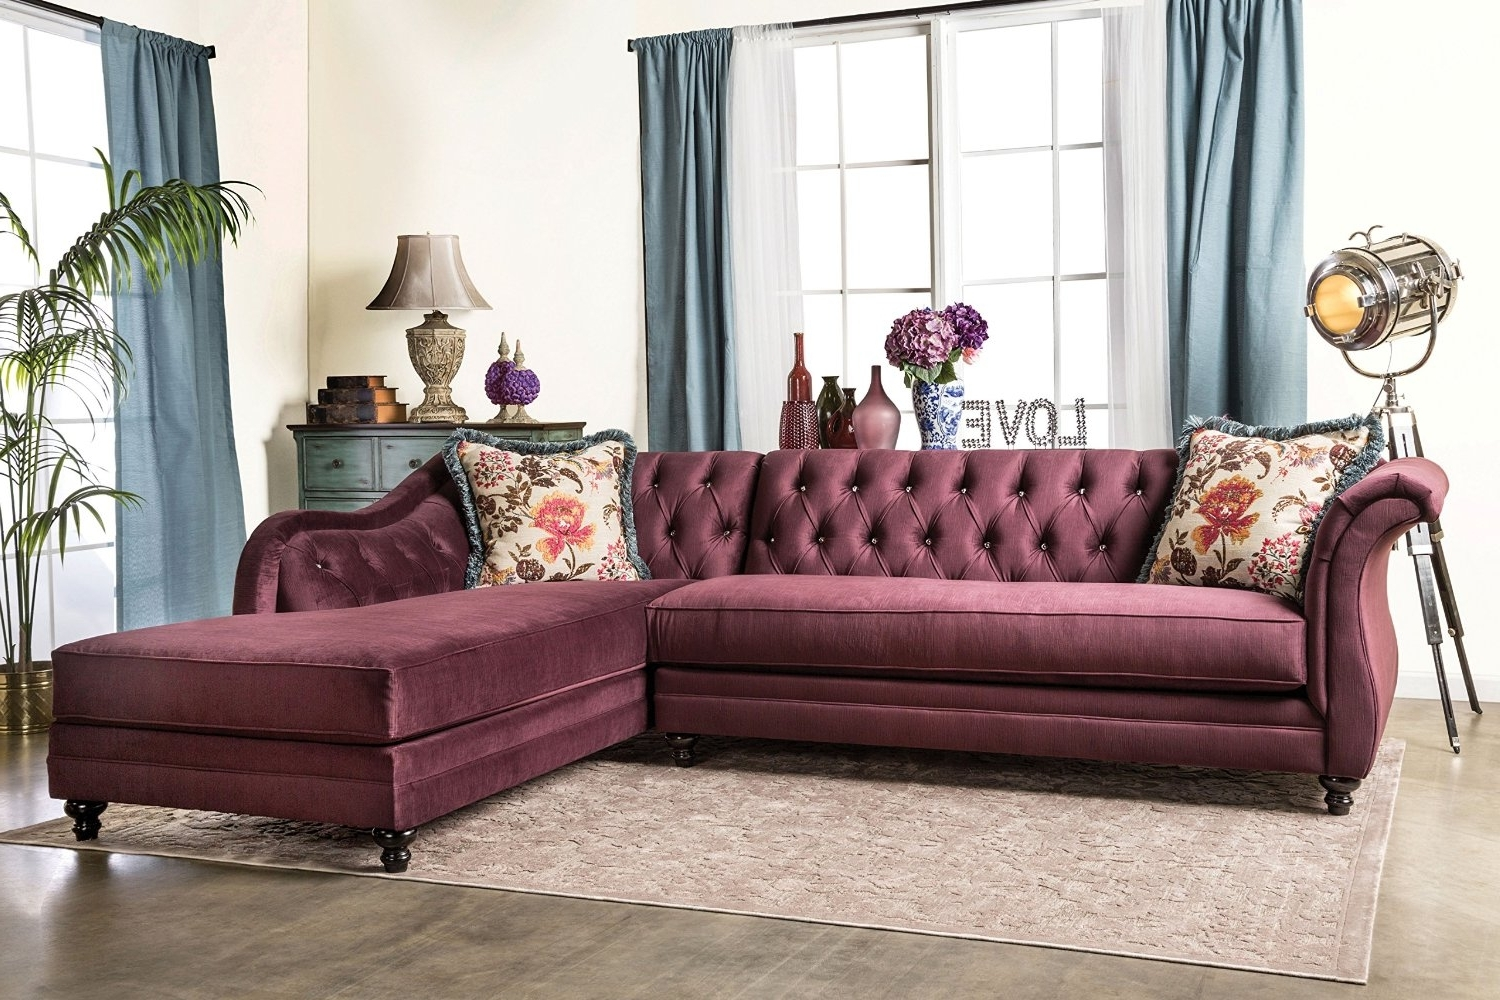 Chesterfield Sofas And Chairs Within Latest 25 Best Chesterfield Sofas To Buy In (View 14 of 15)